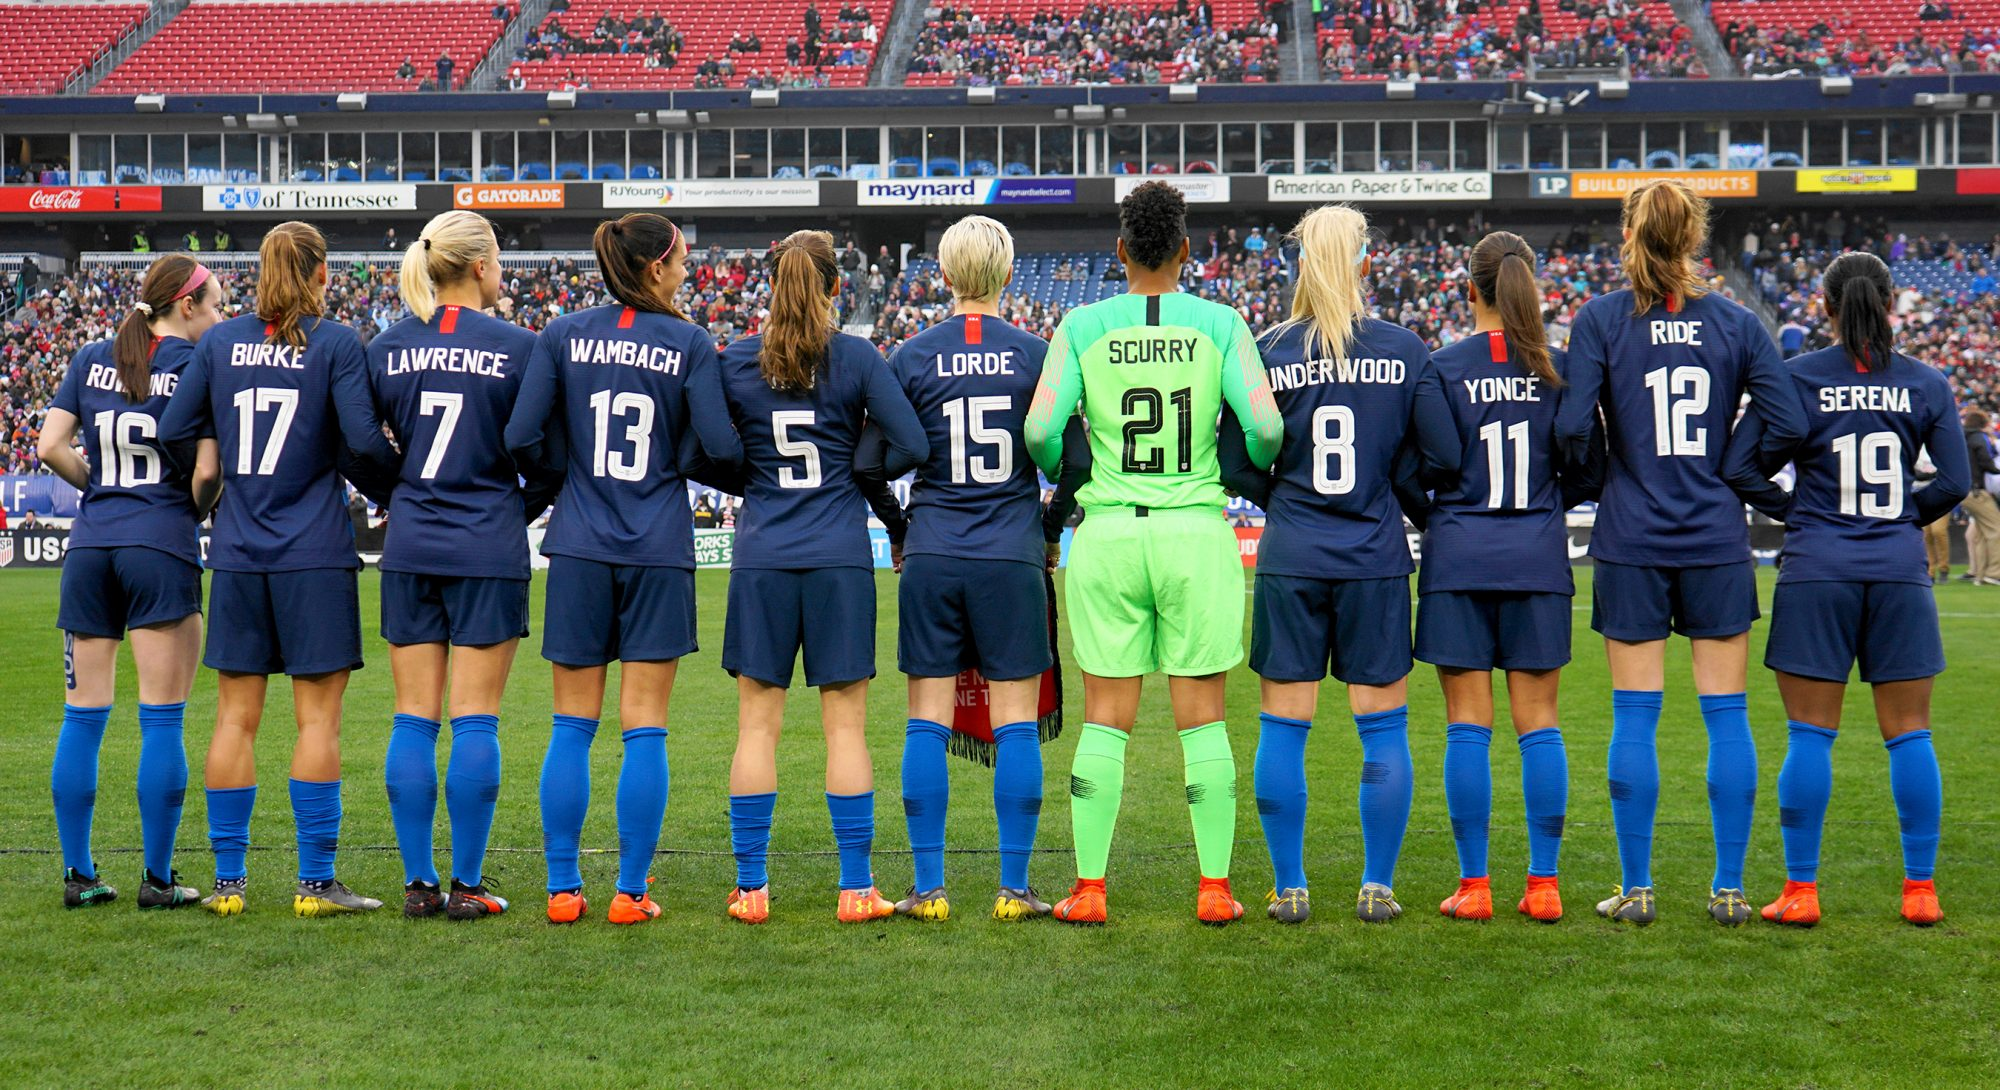 USA Women's Soccer Team - - 2019 SheBelieves Cup - United States v England